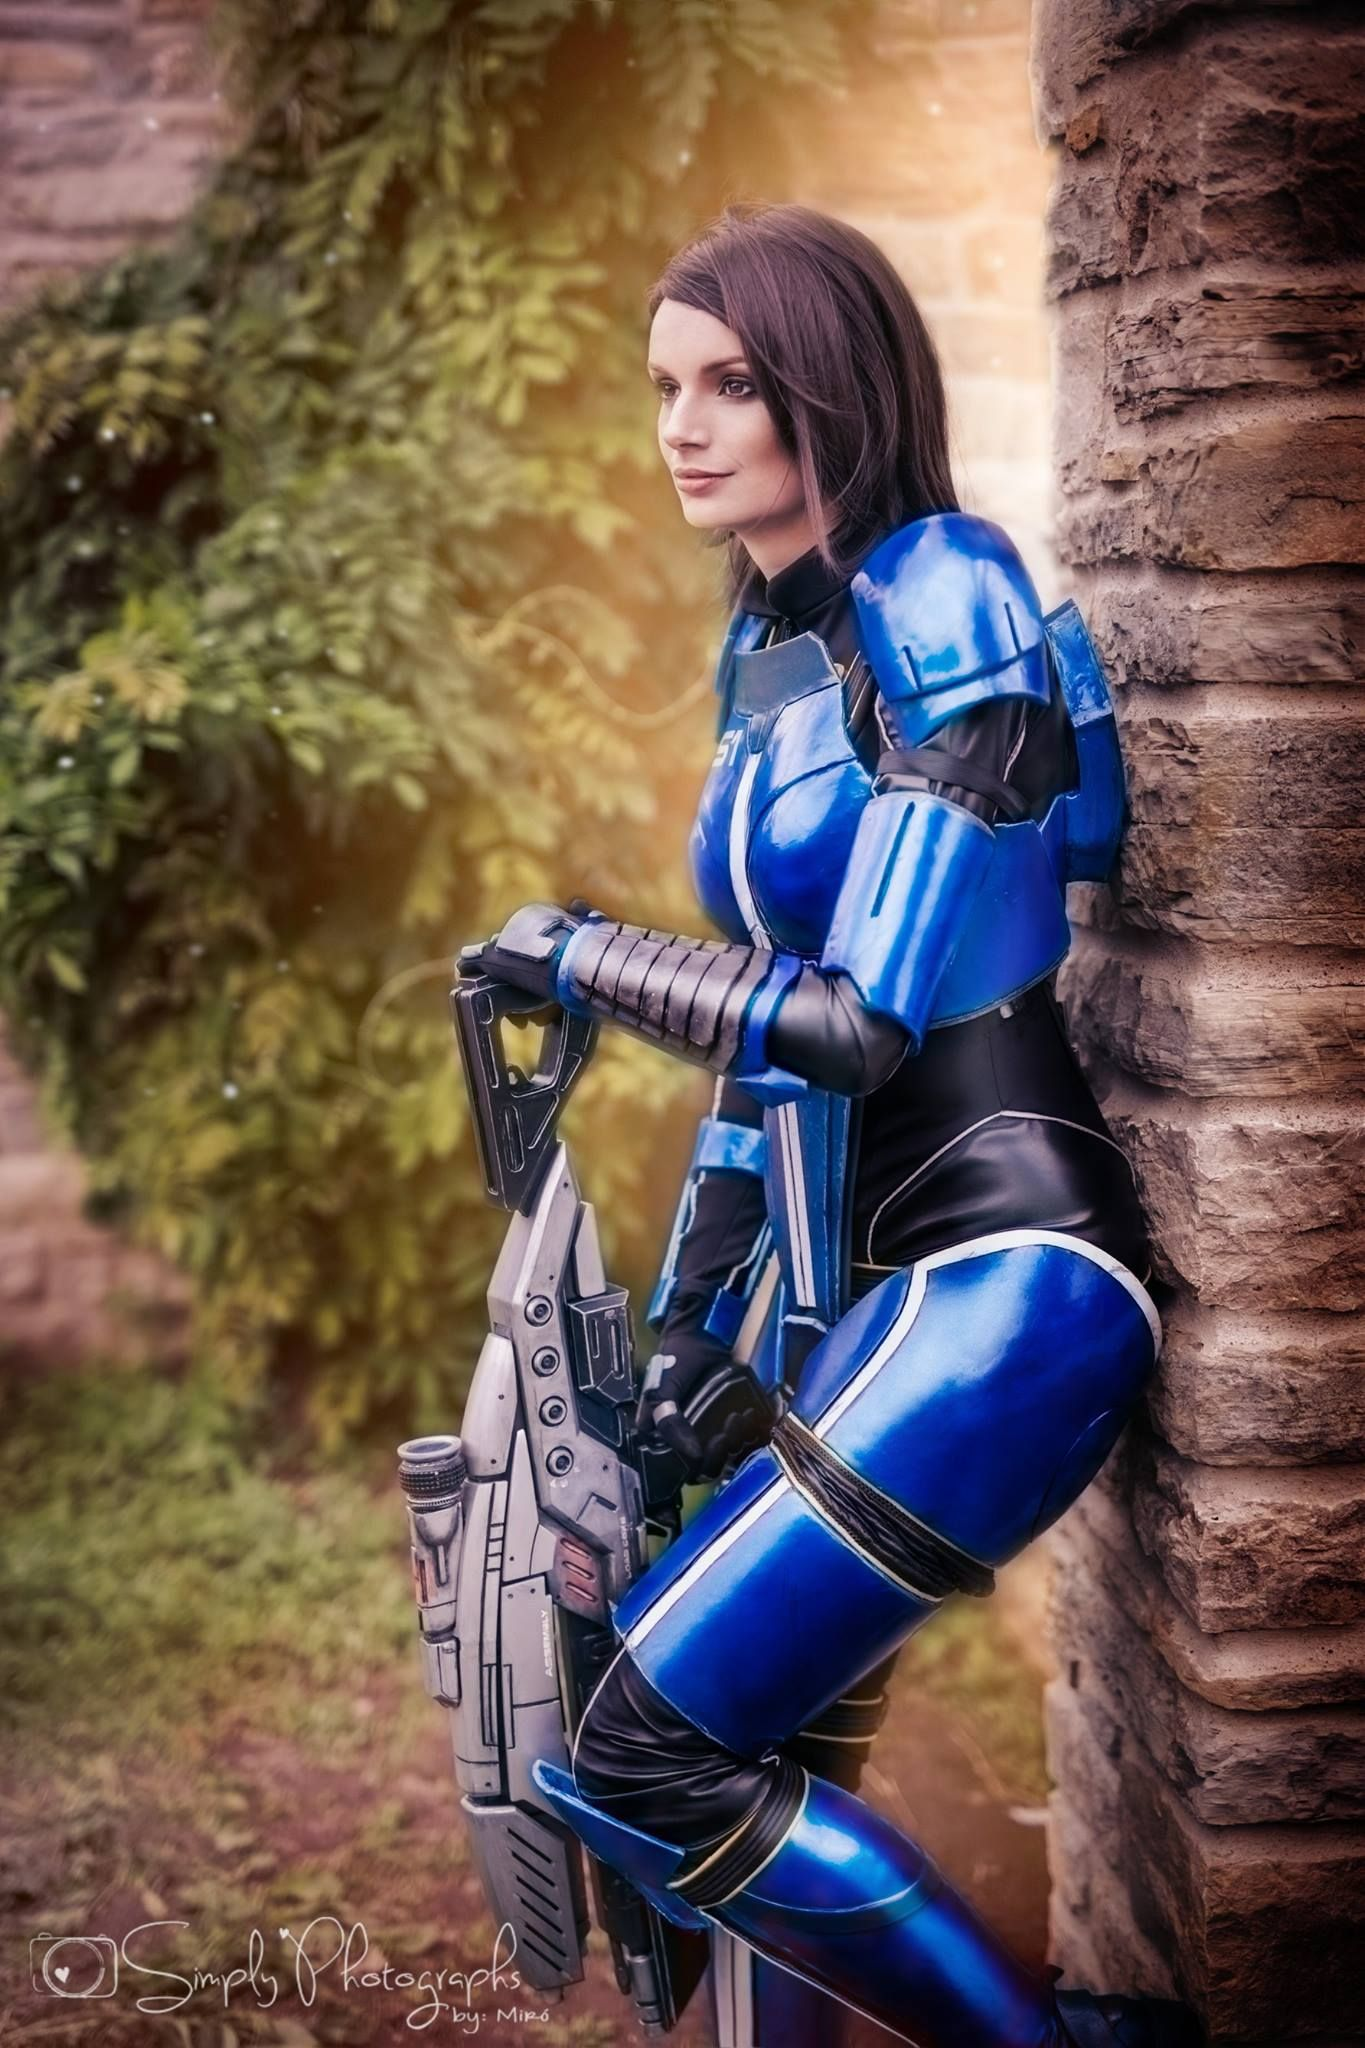 Ashley Williams - Mass Effect Cosplay 2014 by masimage on